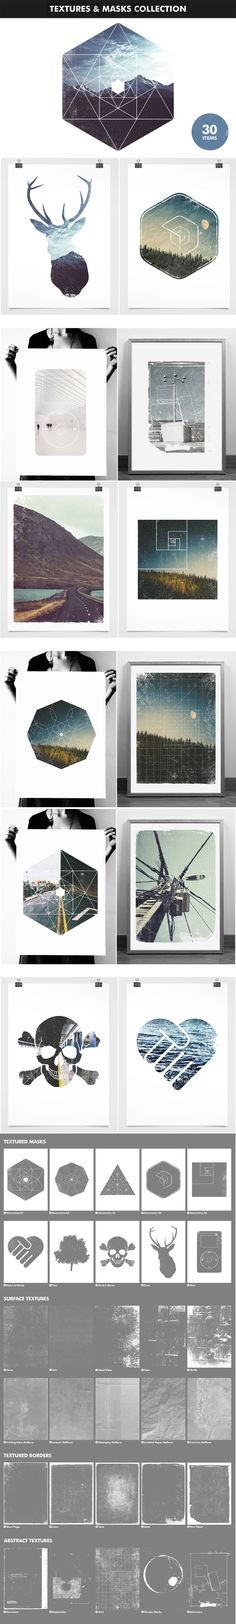 Textures and Image Masks Collection Modern Creative Design Bundle